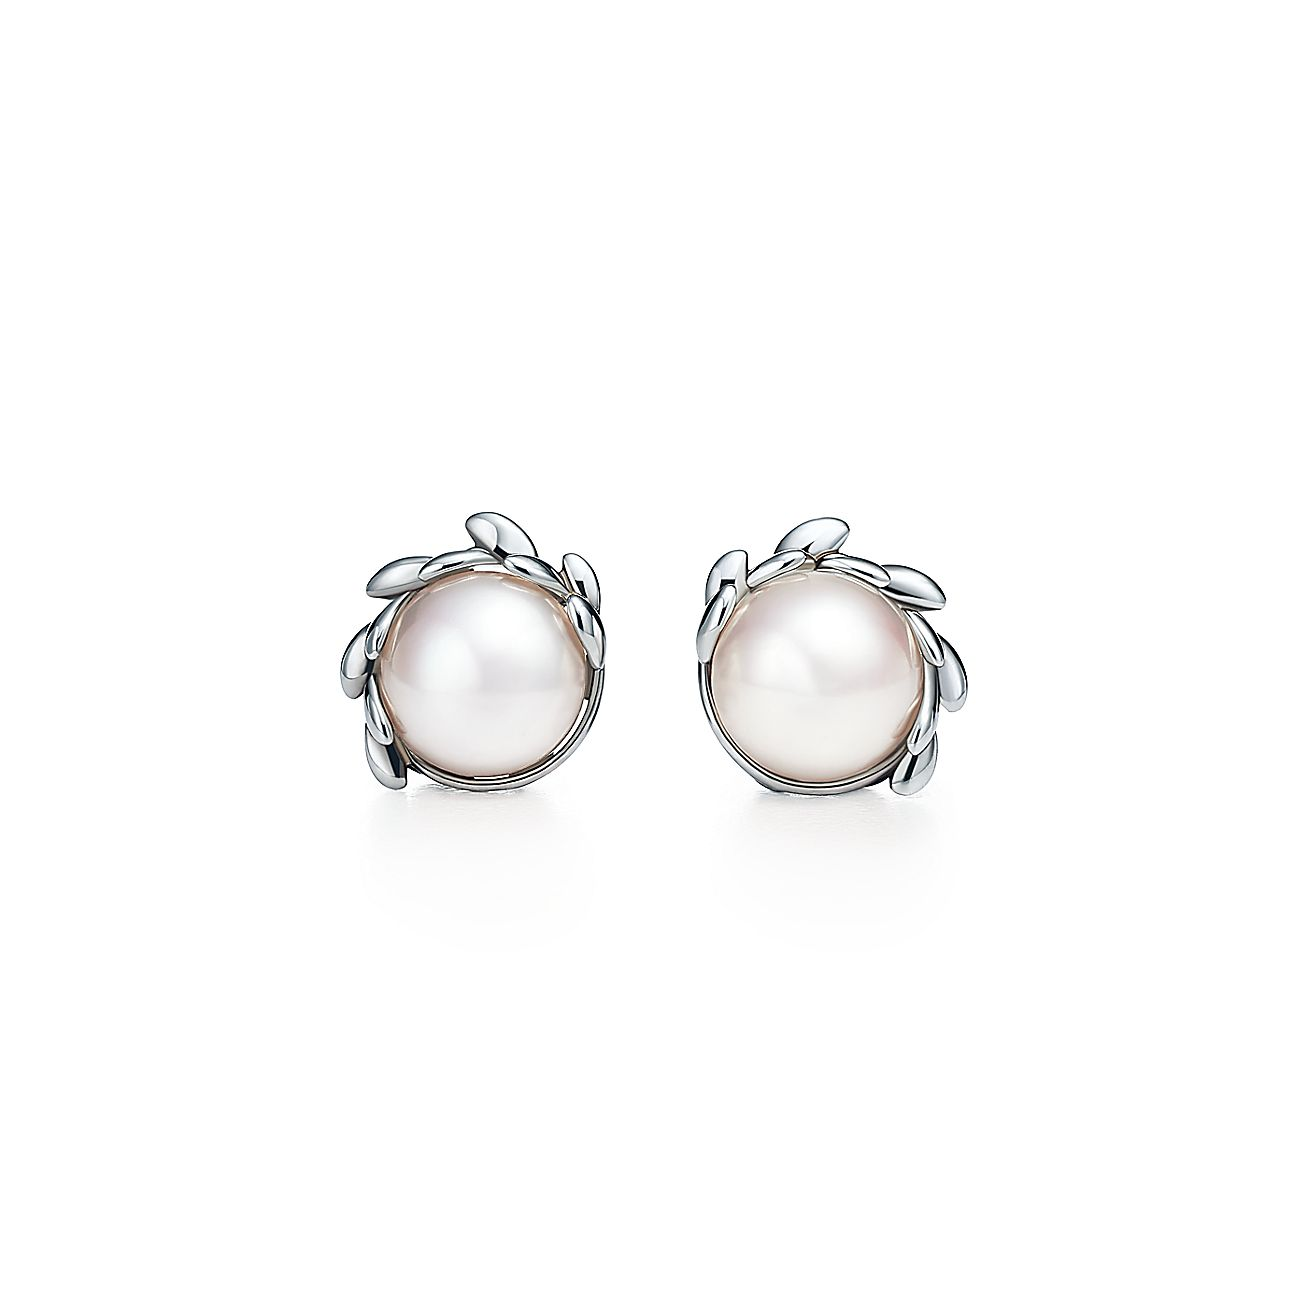 Paloma Pico Olive Leaf Pearl Earrings In Sterling Silver Tiffany Co